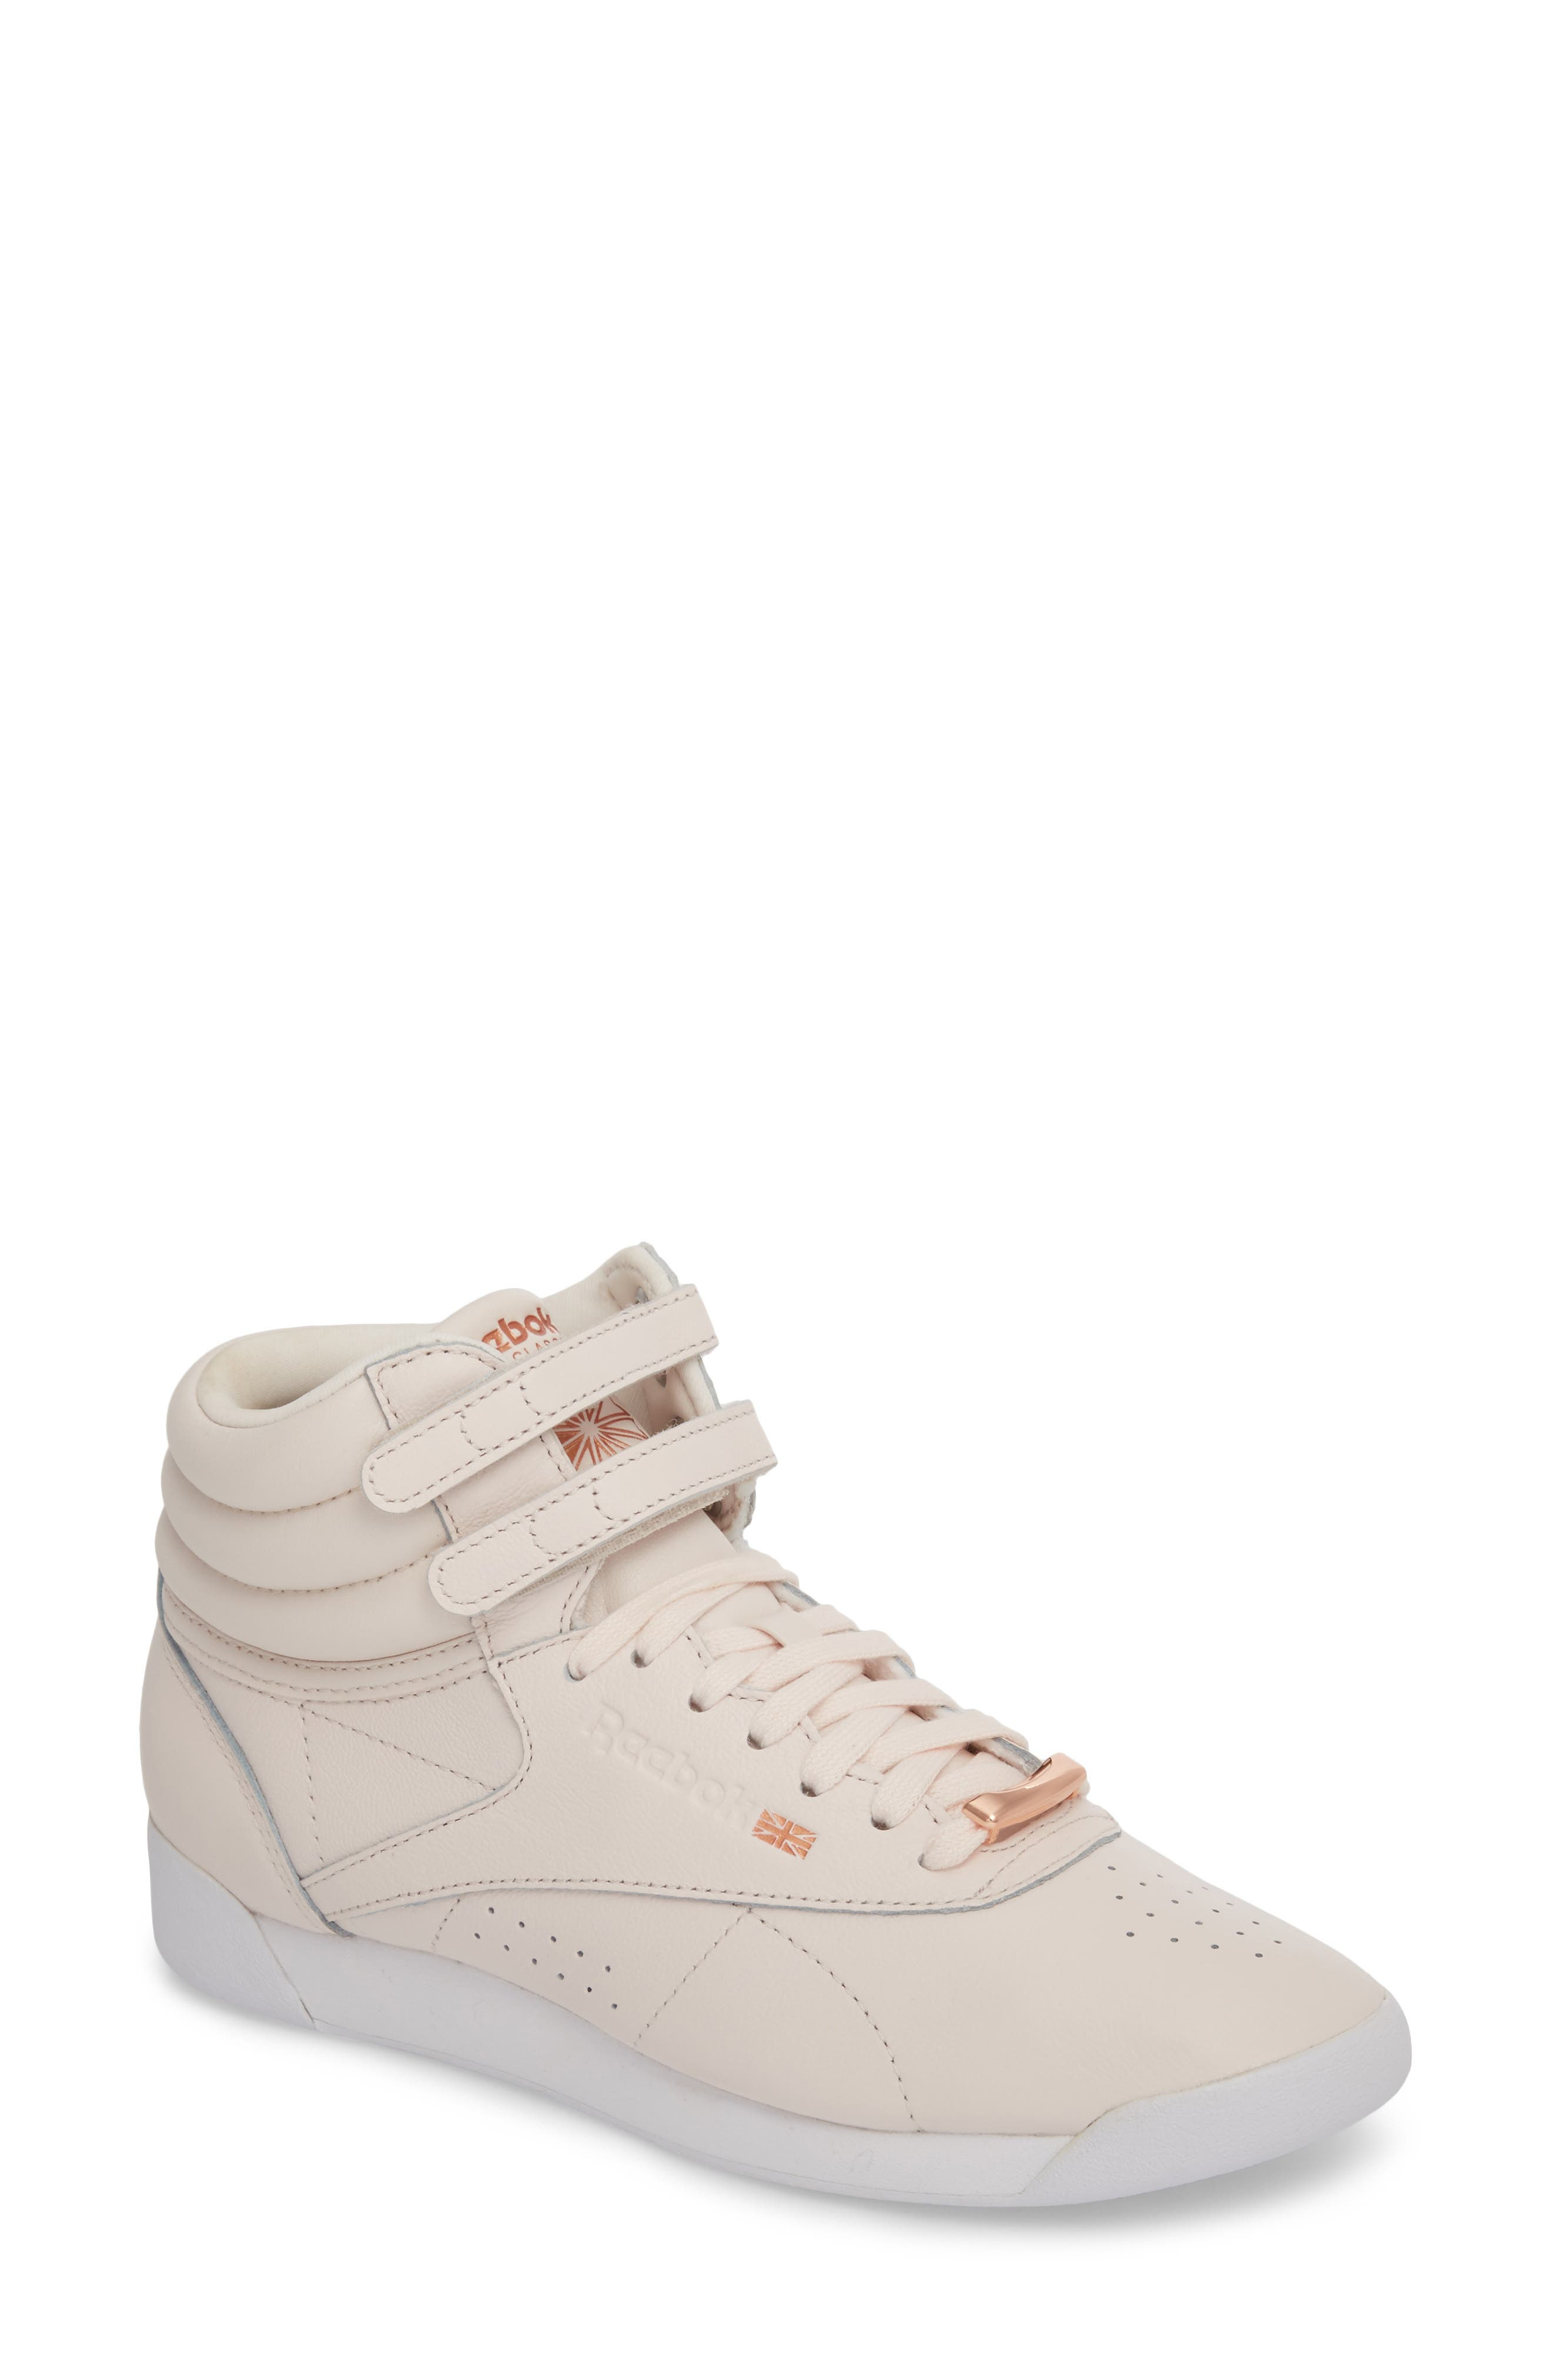 Freestyle Hi Muted Sneaker,                             Main thumbnail 1, color,                             Pale Pink/ White/ Cool Shadow